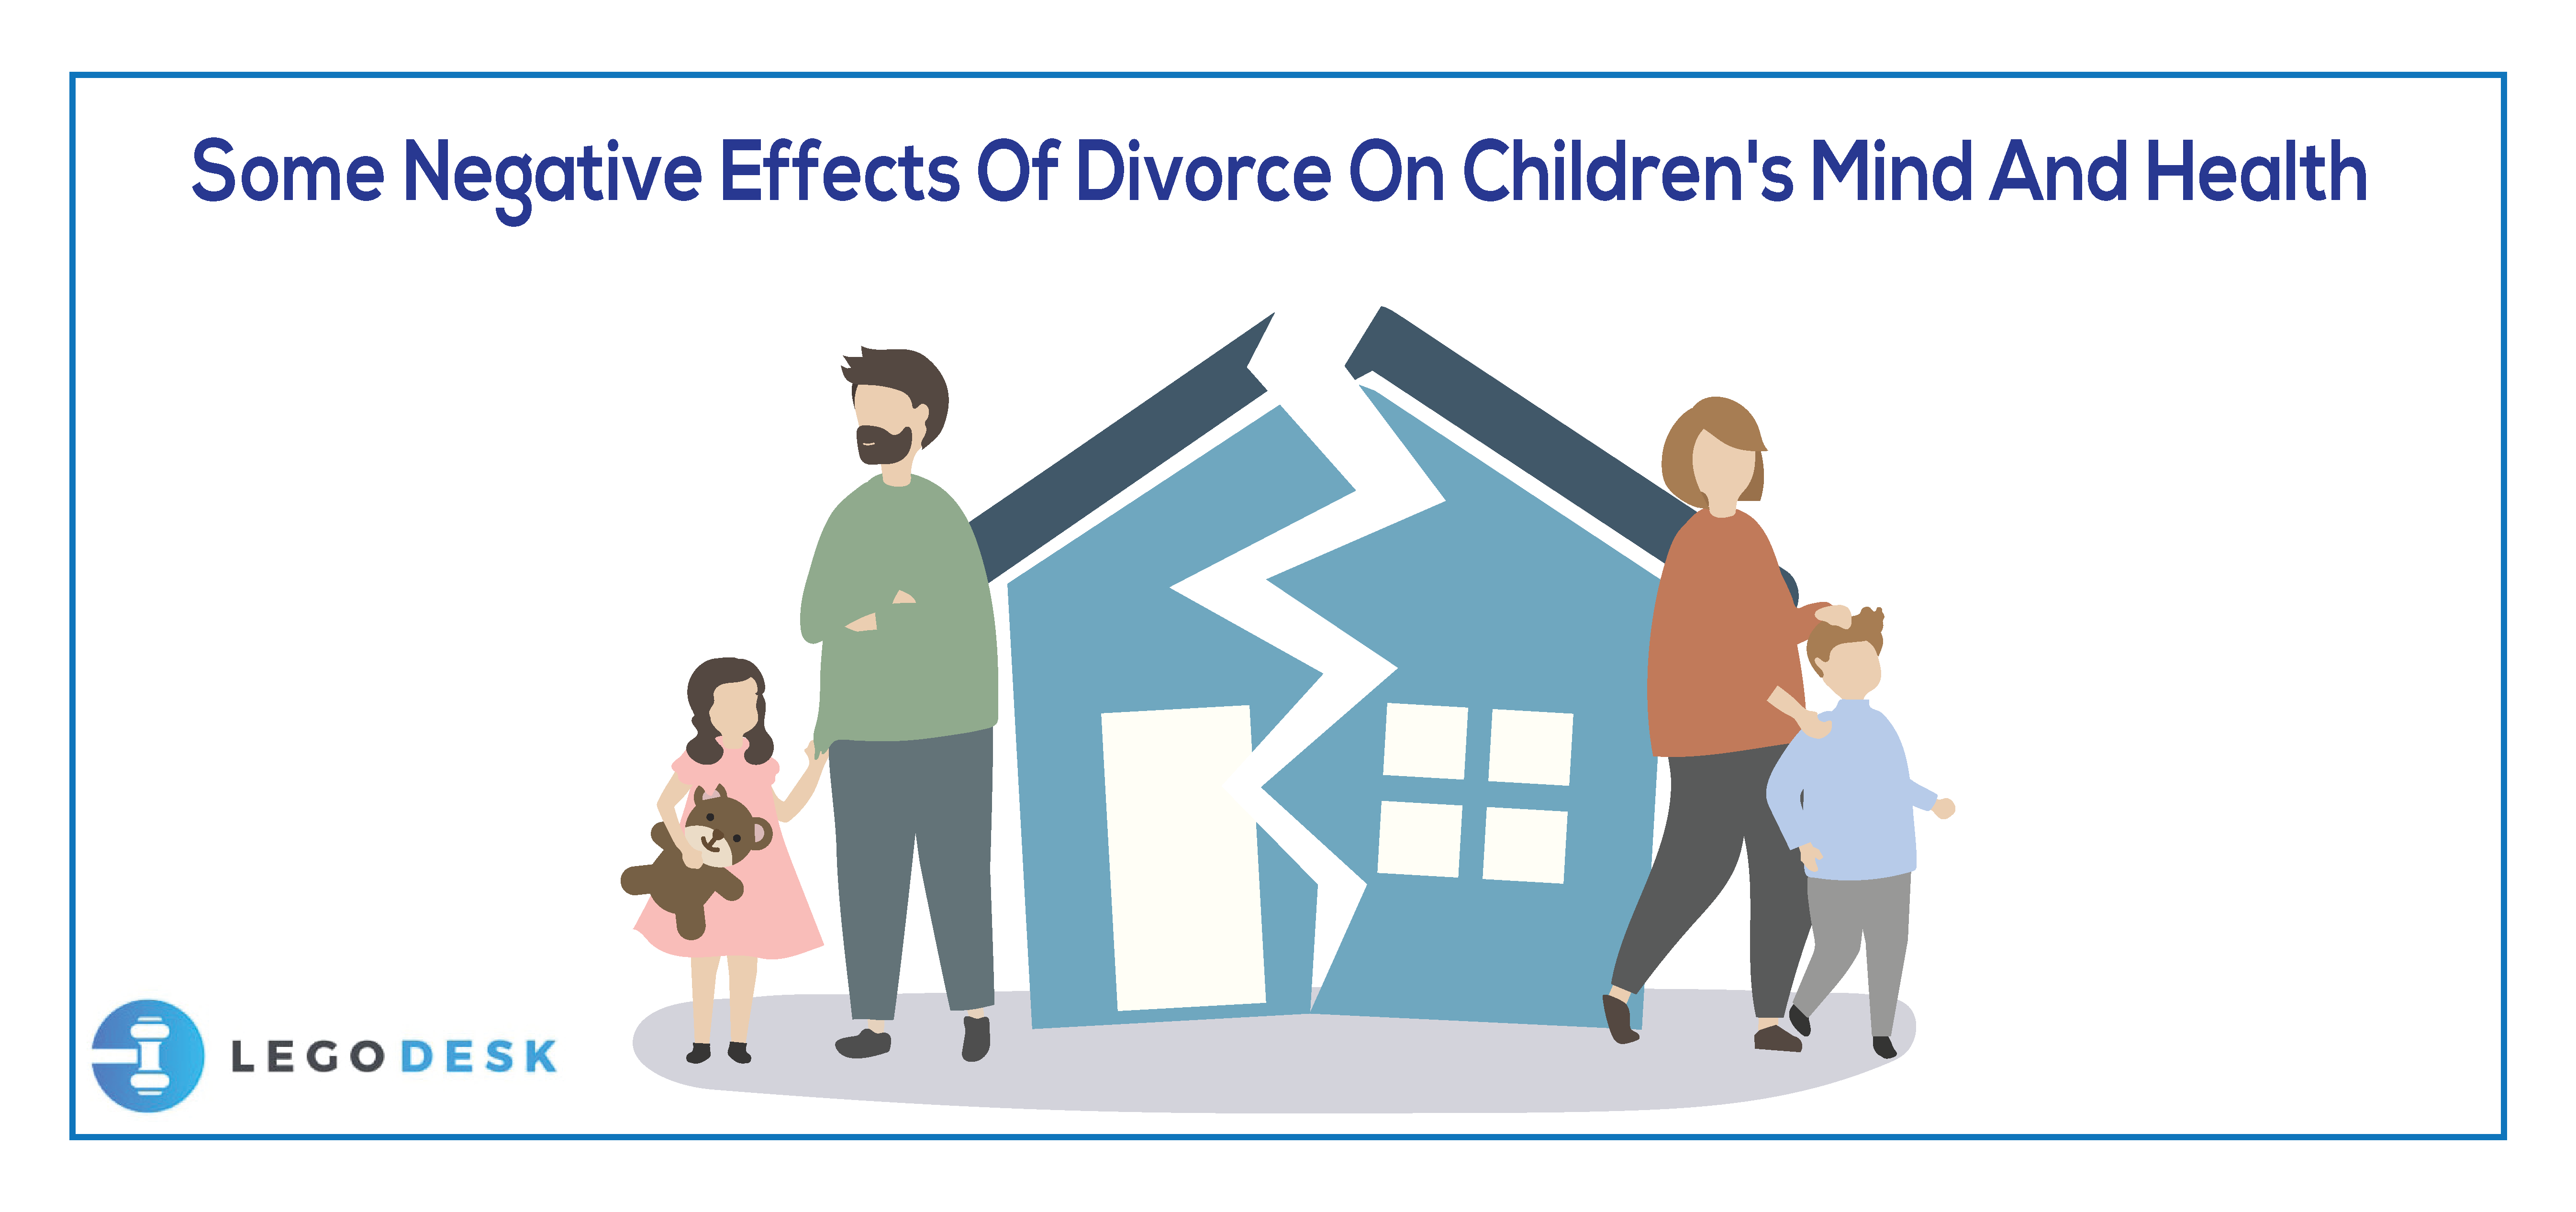 Negative Effects Of Divorce On Children's Mind And Health